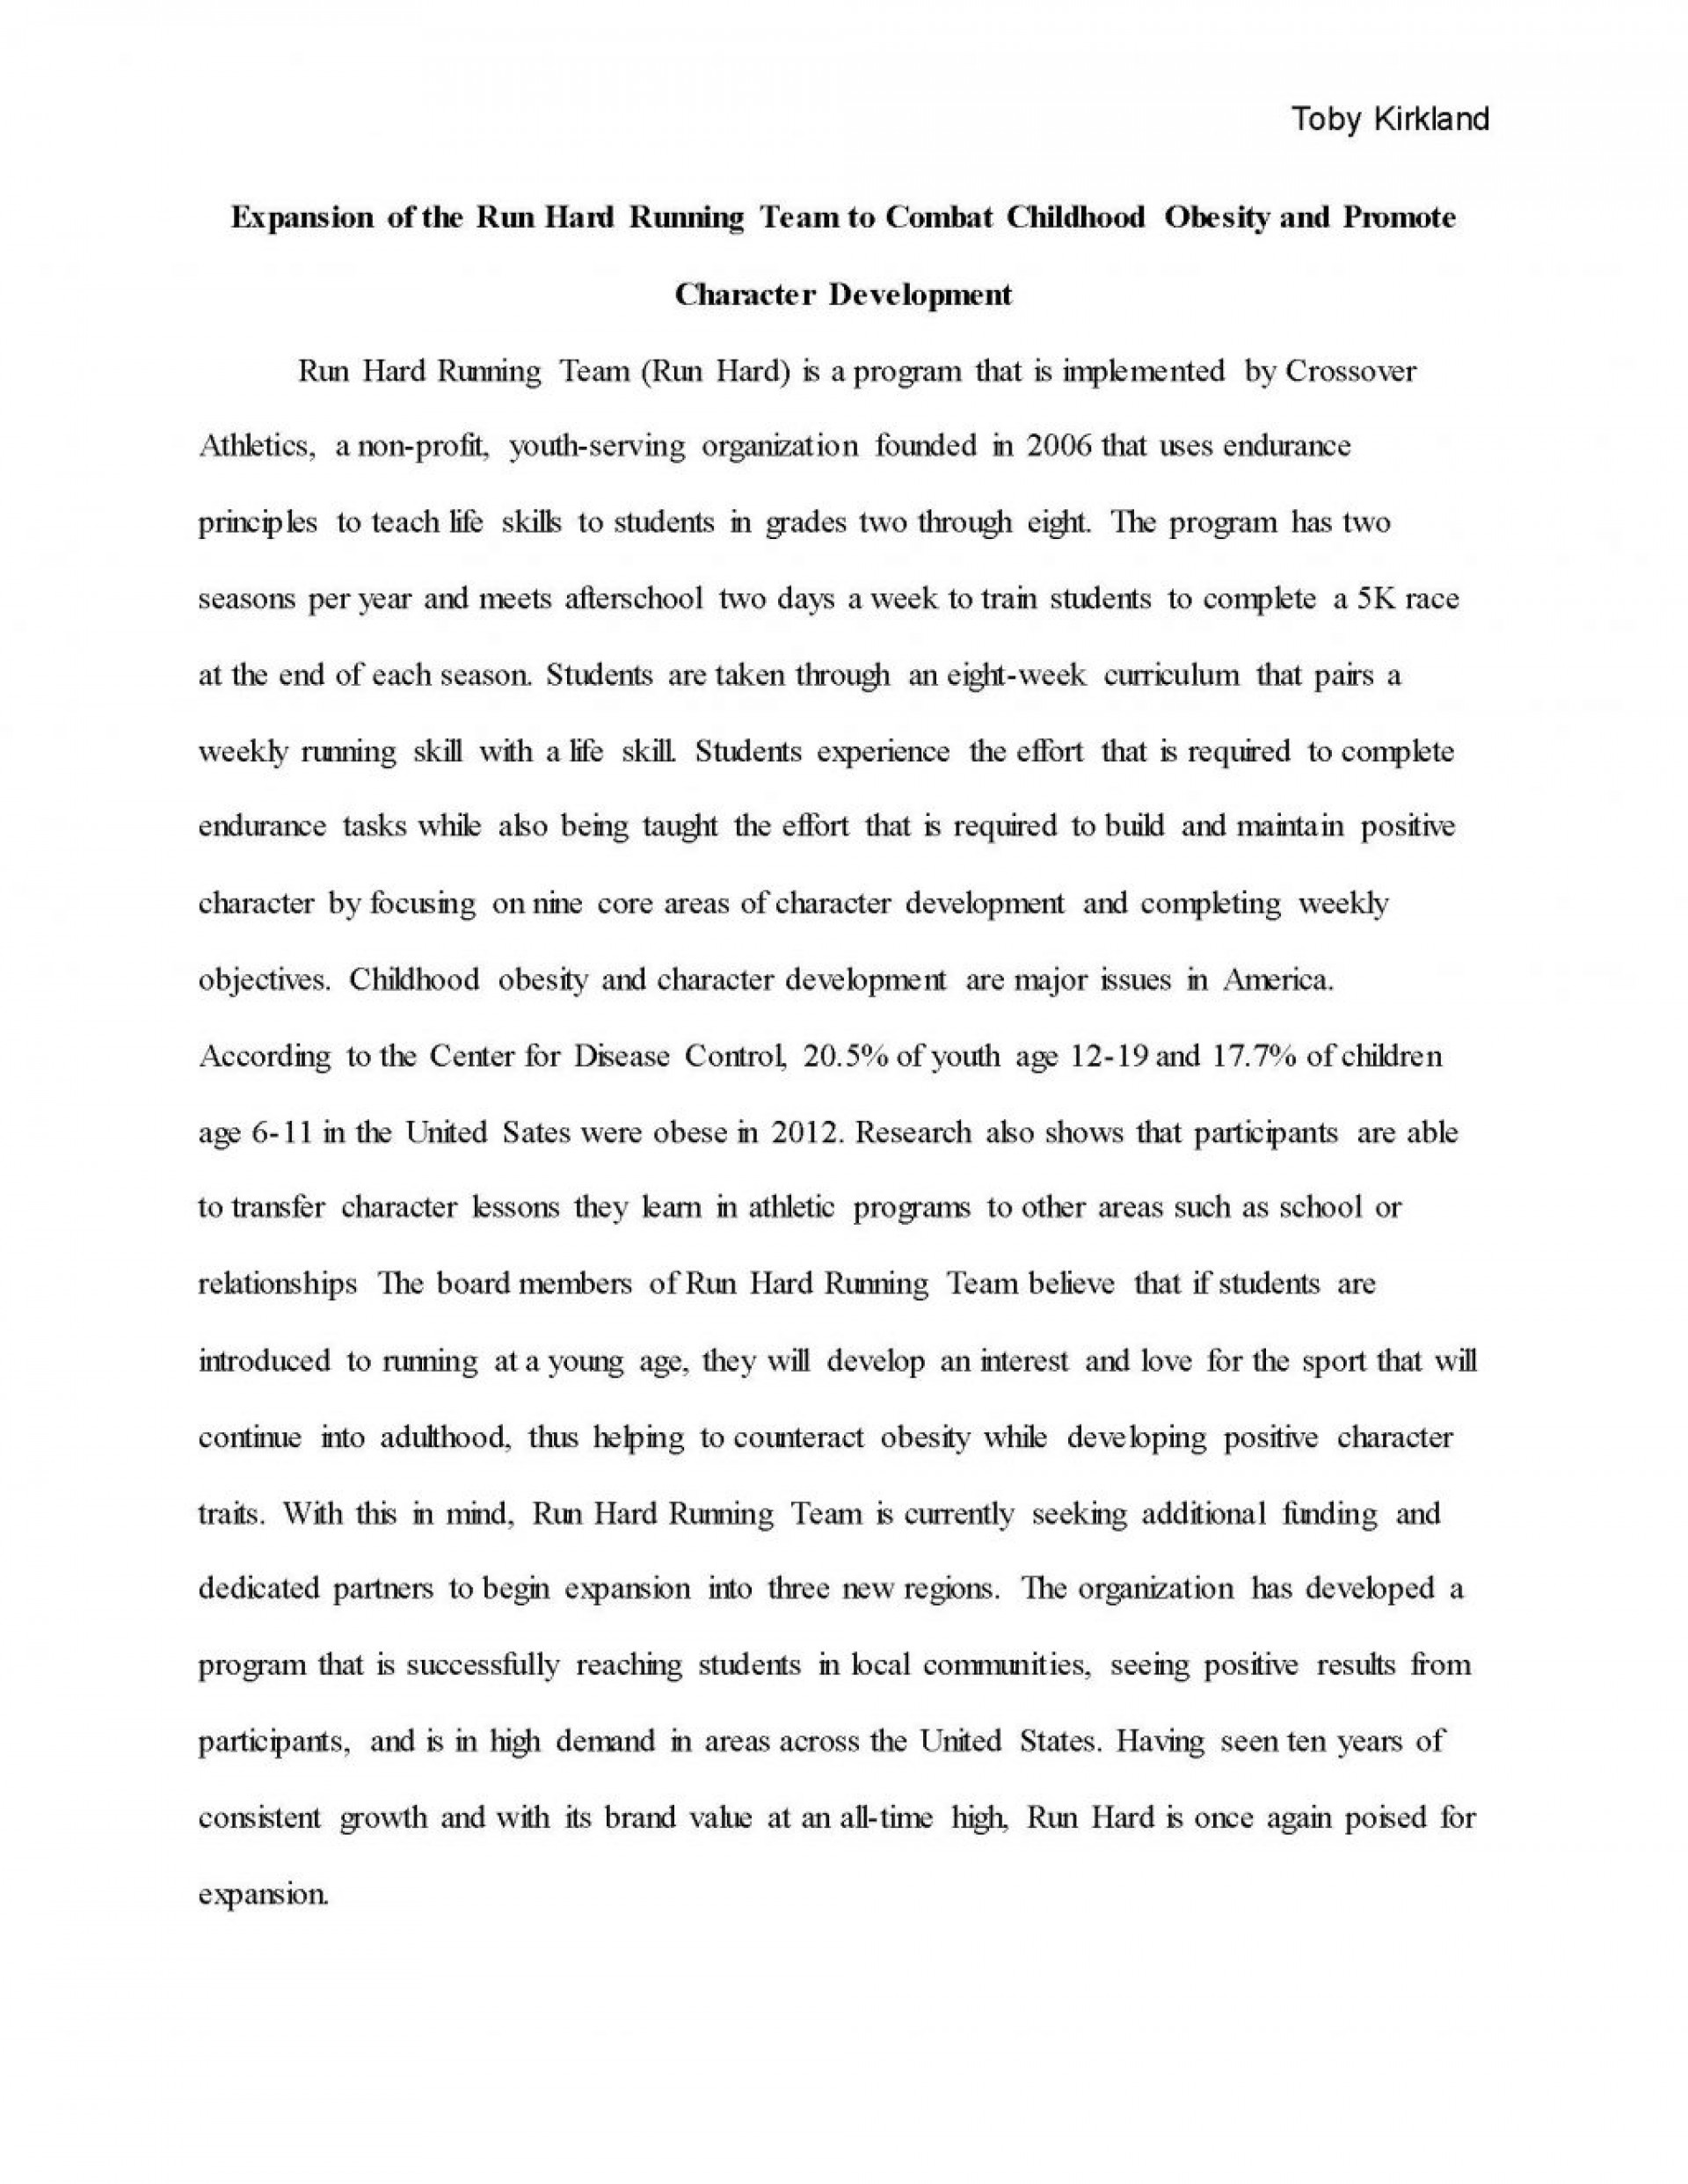 012 Childhood Obesity Research Paper Topics Essay Sample Barca Fontanacountryinn Com Child Example20 Awesome Articles 1920